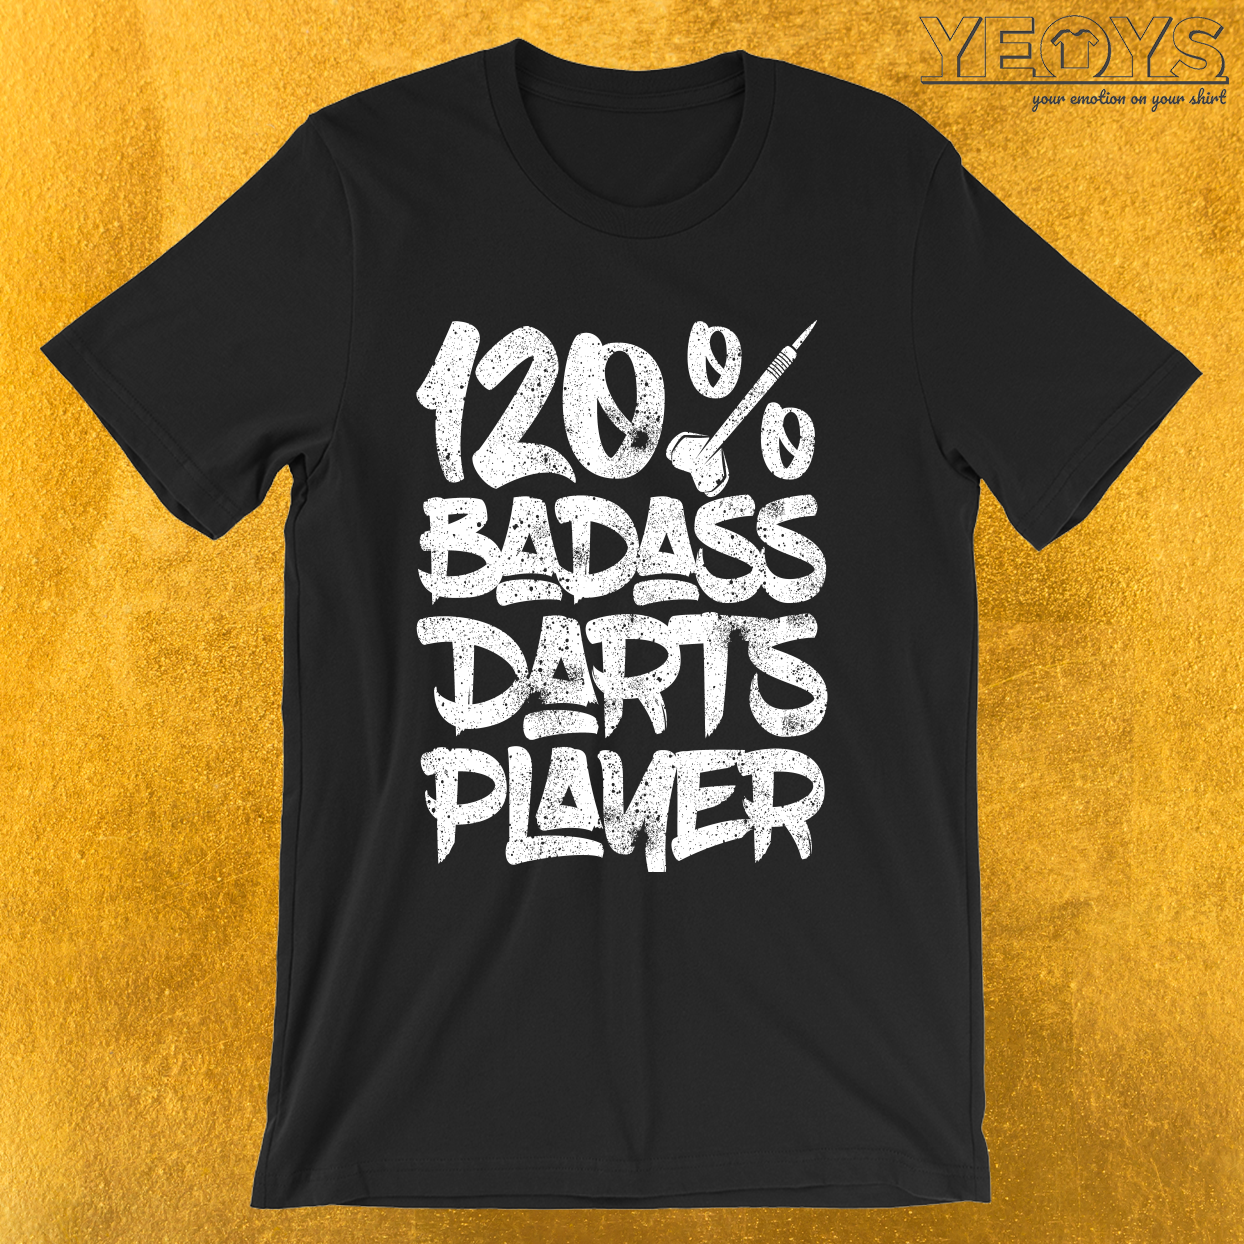 120% Badass Darts Player – Darts & Bullseye Tee